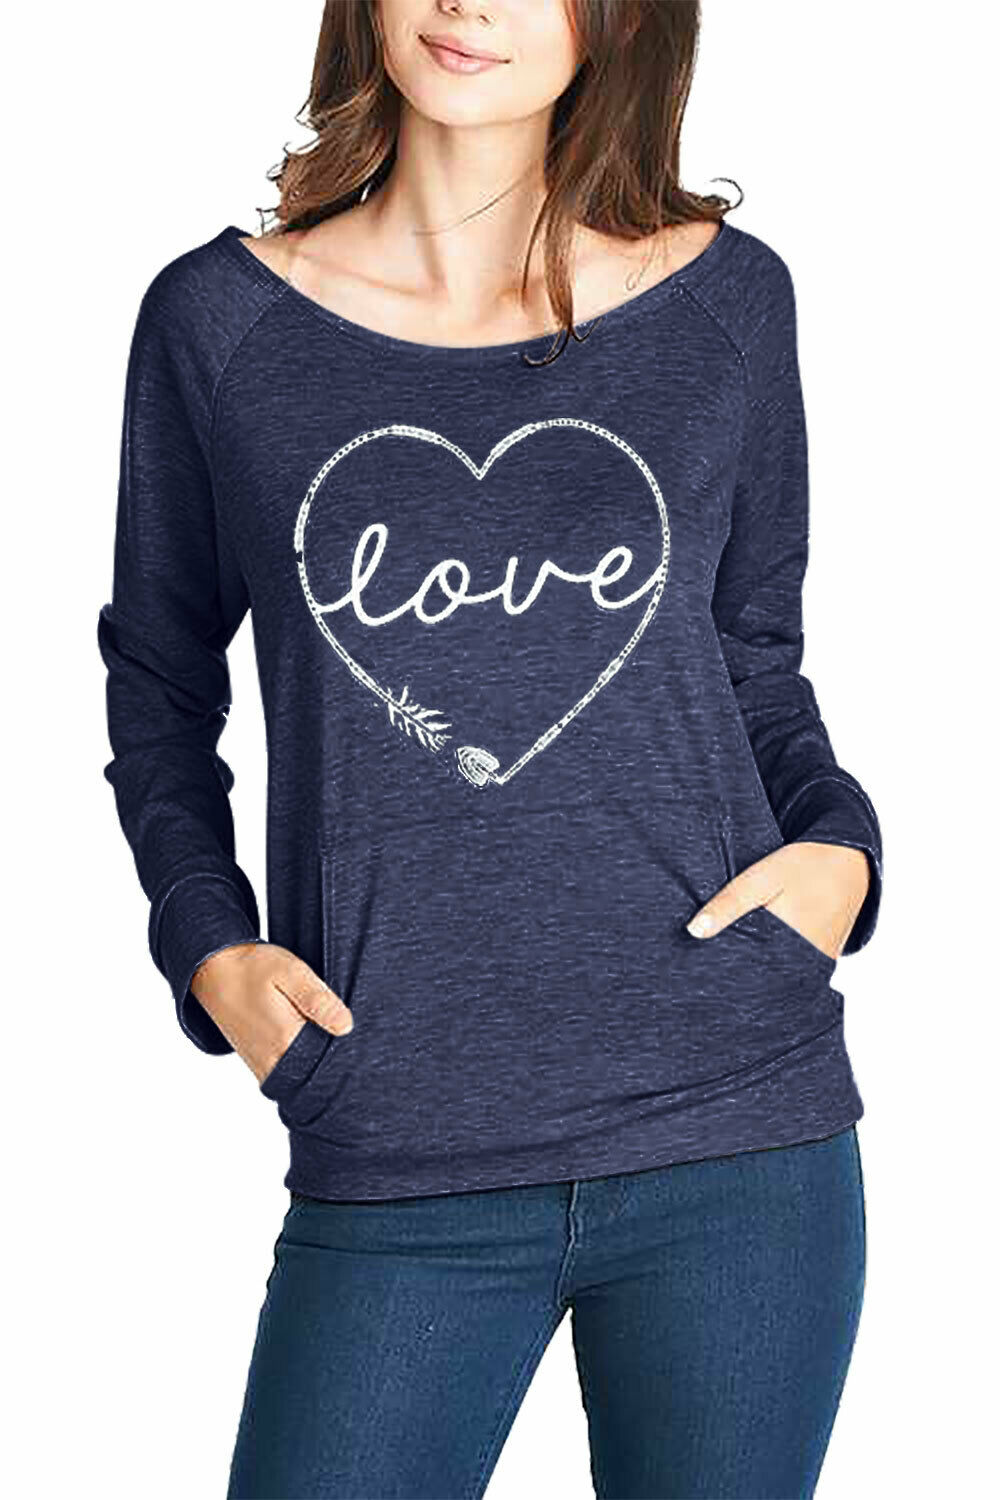 I'M IN LOVE TOP Arrow Heart on Blue Long Sleeve Round Neck Pockets Top Sweatshirt